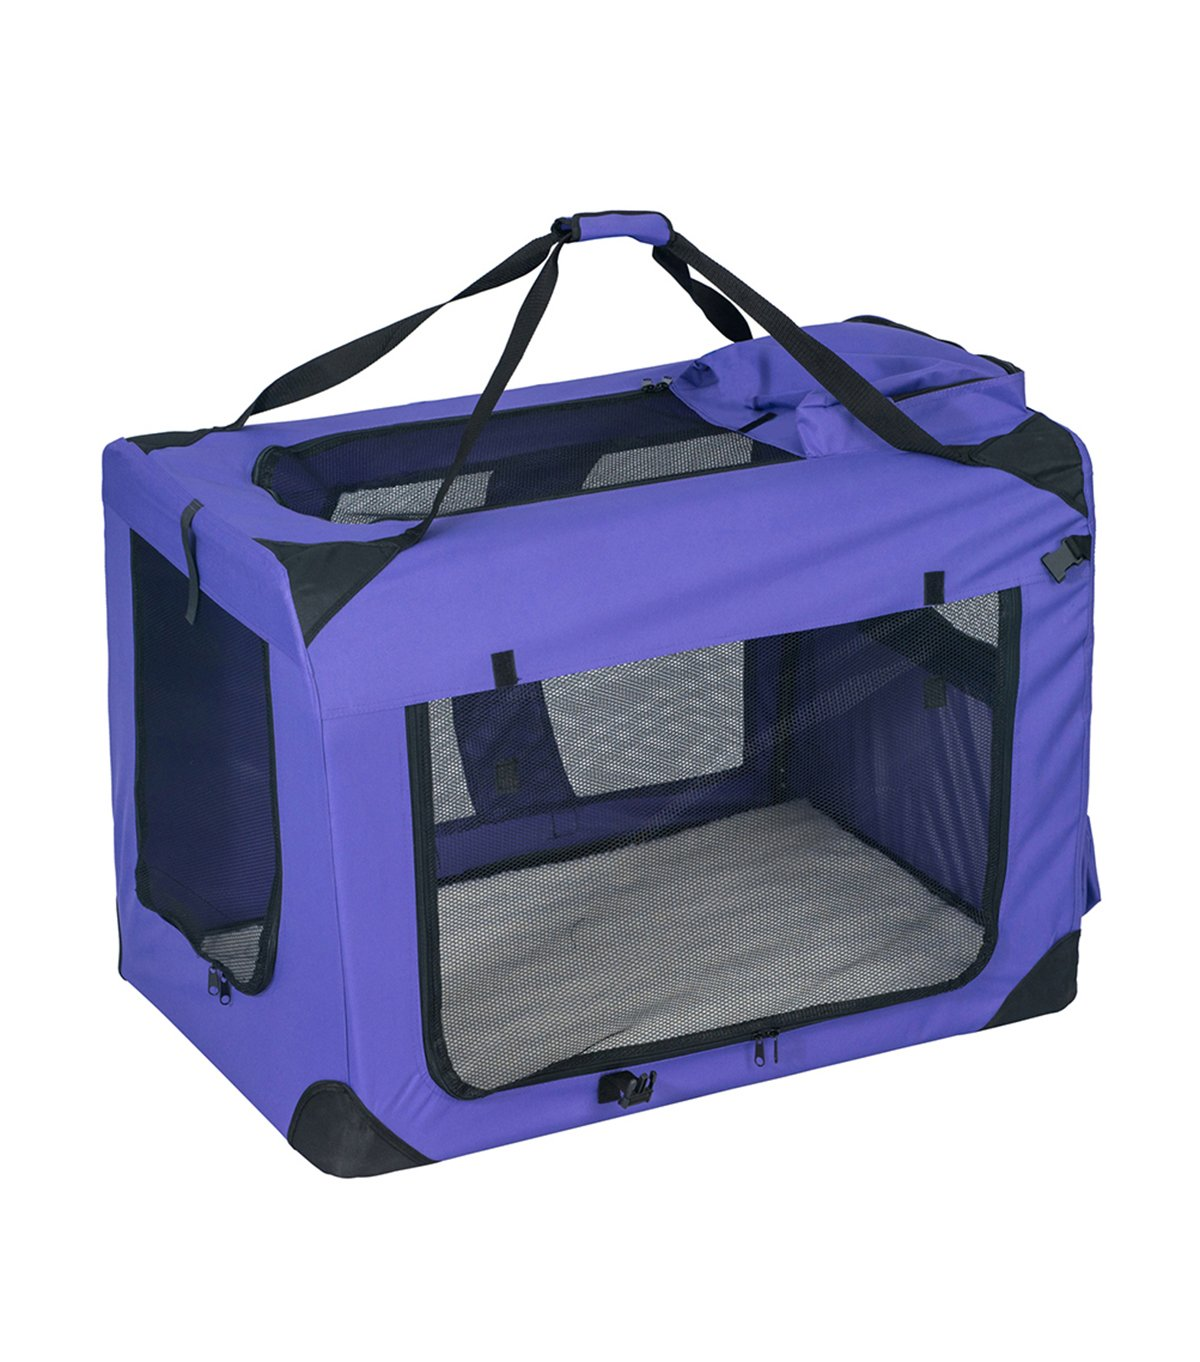 BuyHive Dog Carrier Pet Travel Tote Crate Cat Puppy Carrying House Training Kennel Portable